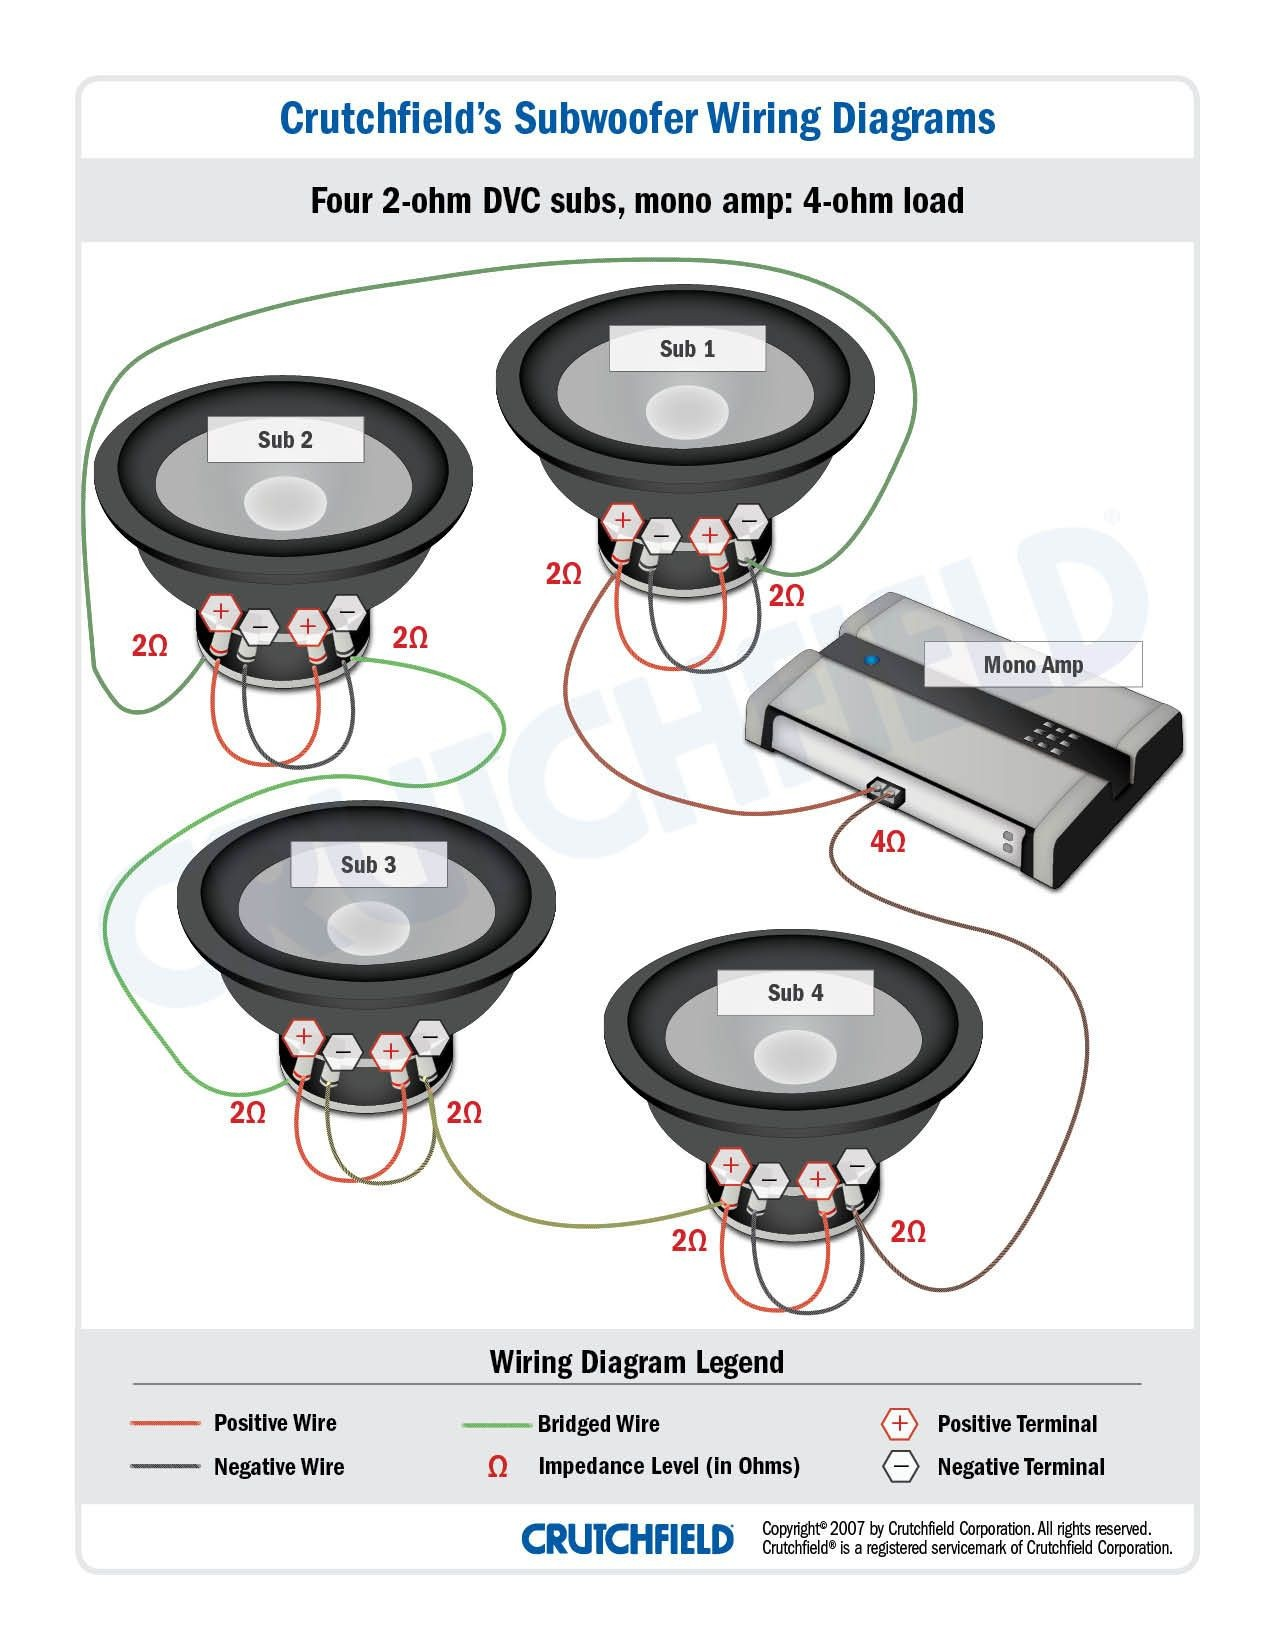 Wiring Diagram for Car Subwoofer Valid top 10 Subwoofer Wiring Diagram Free Download 4 Dvc 2